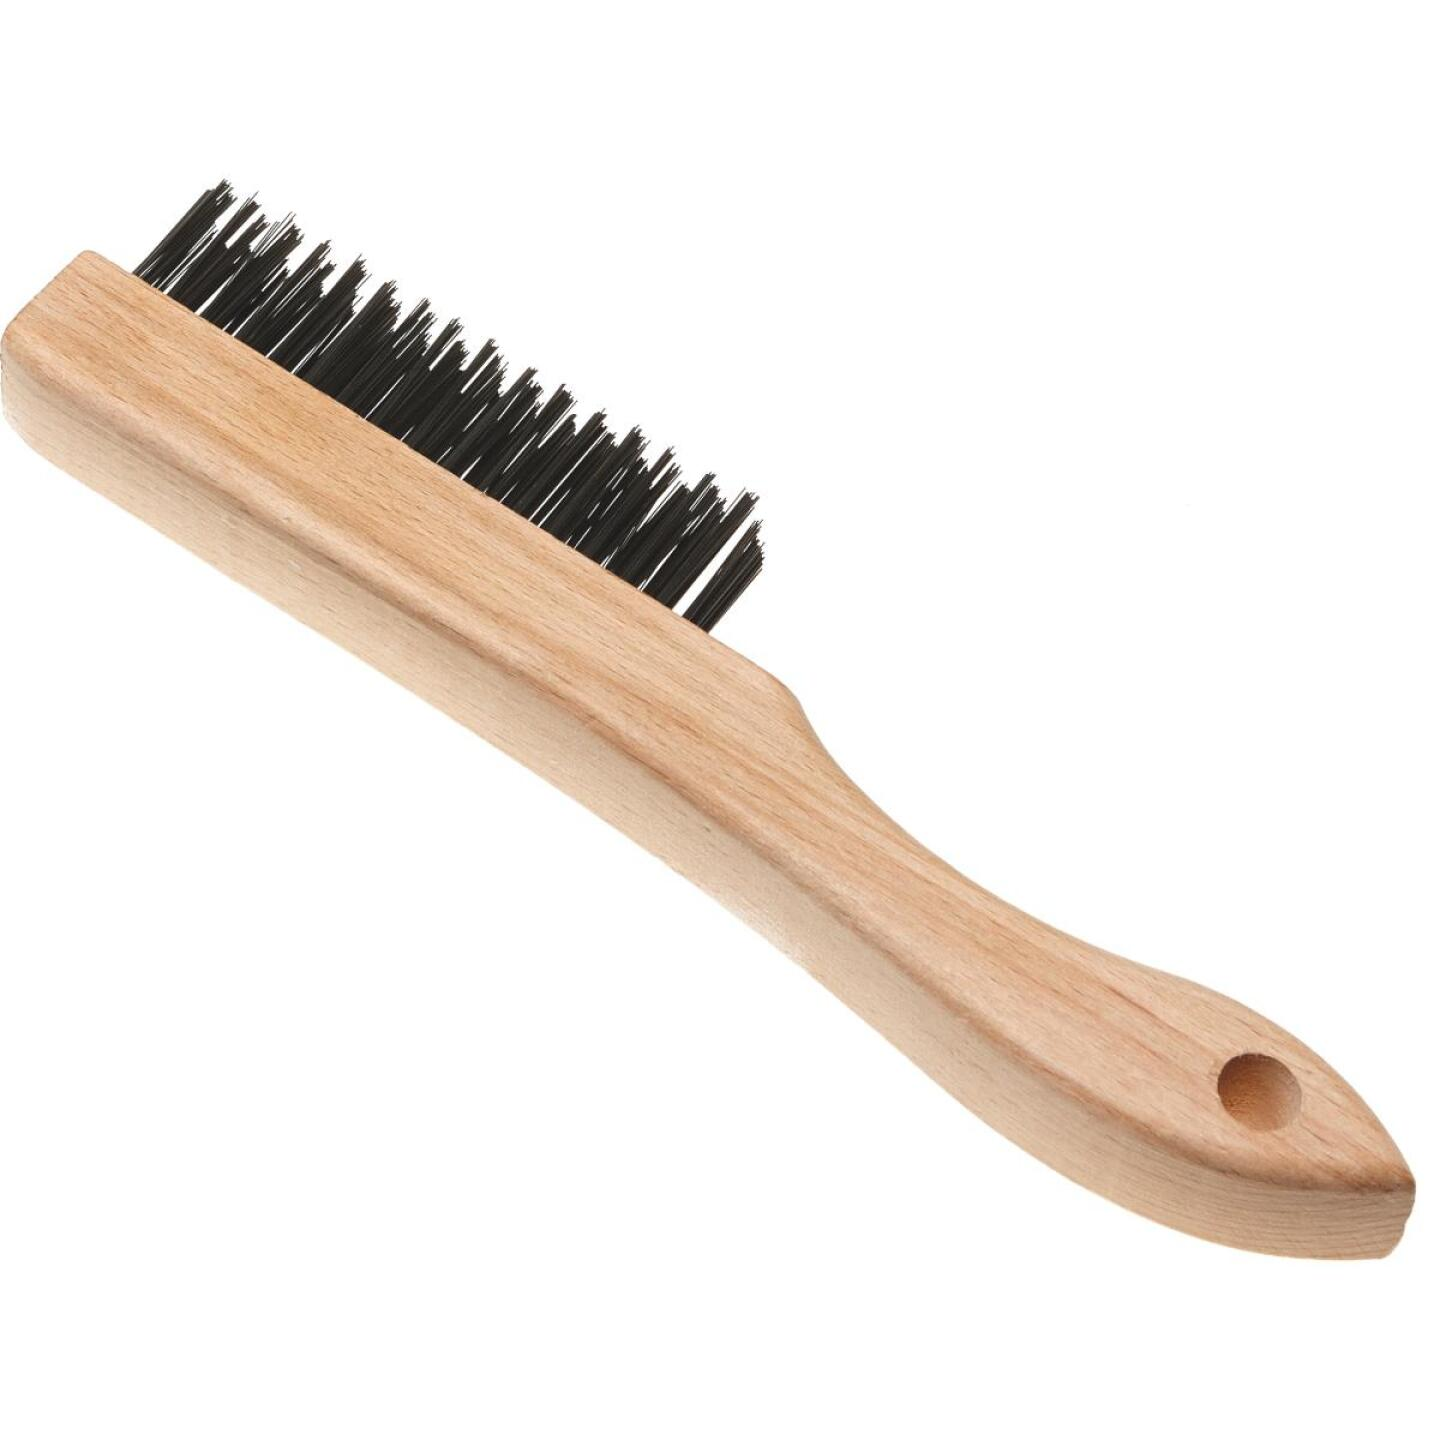 Best Look Wood Shoe Handle Wire Brush Image 1